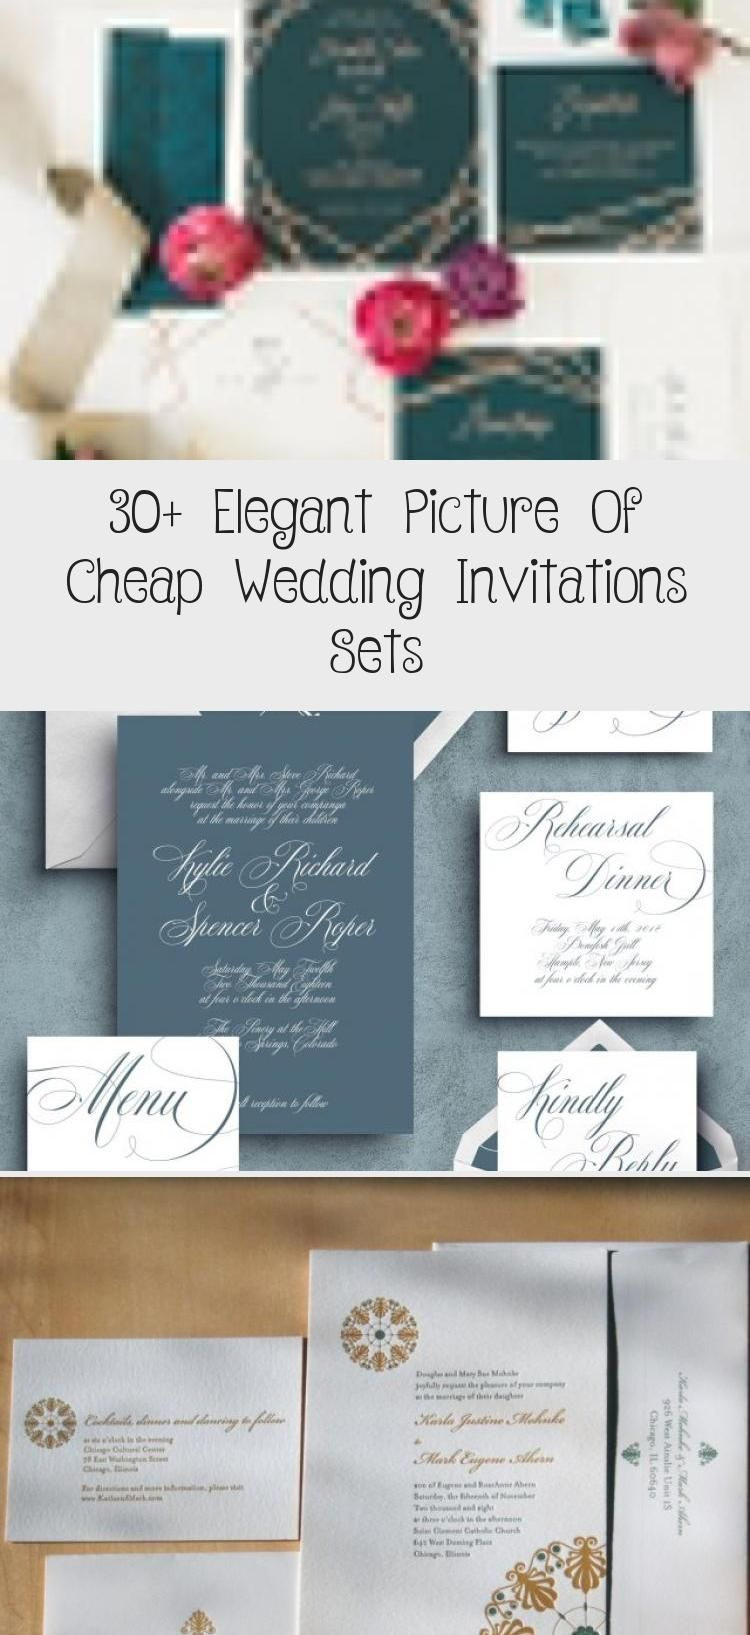 30 Elegant Picture Of Cheap Wedding Invitations Sets Cheap Wedding Invitations Inexpensive Wedding Invitations Wedding Invitations